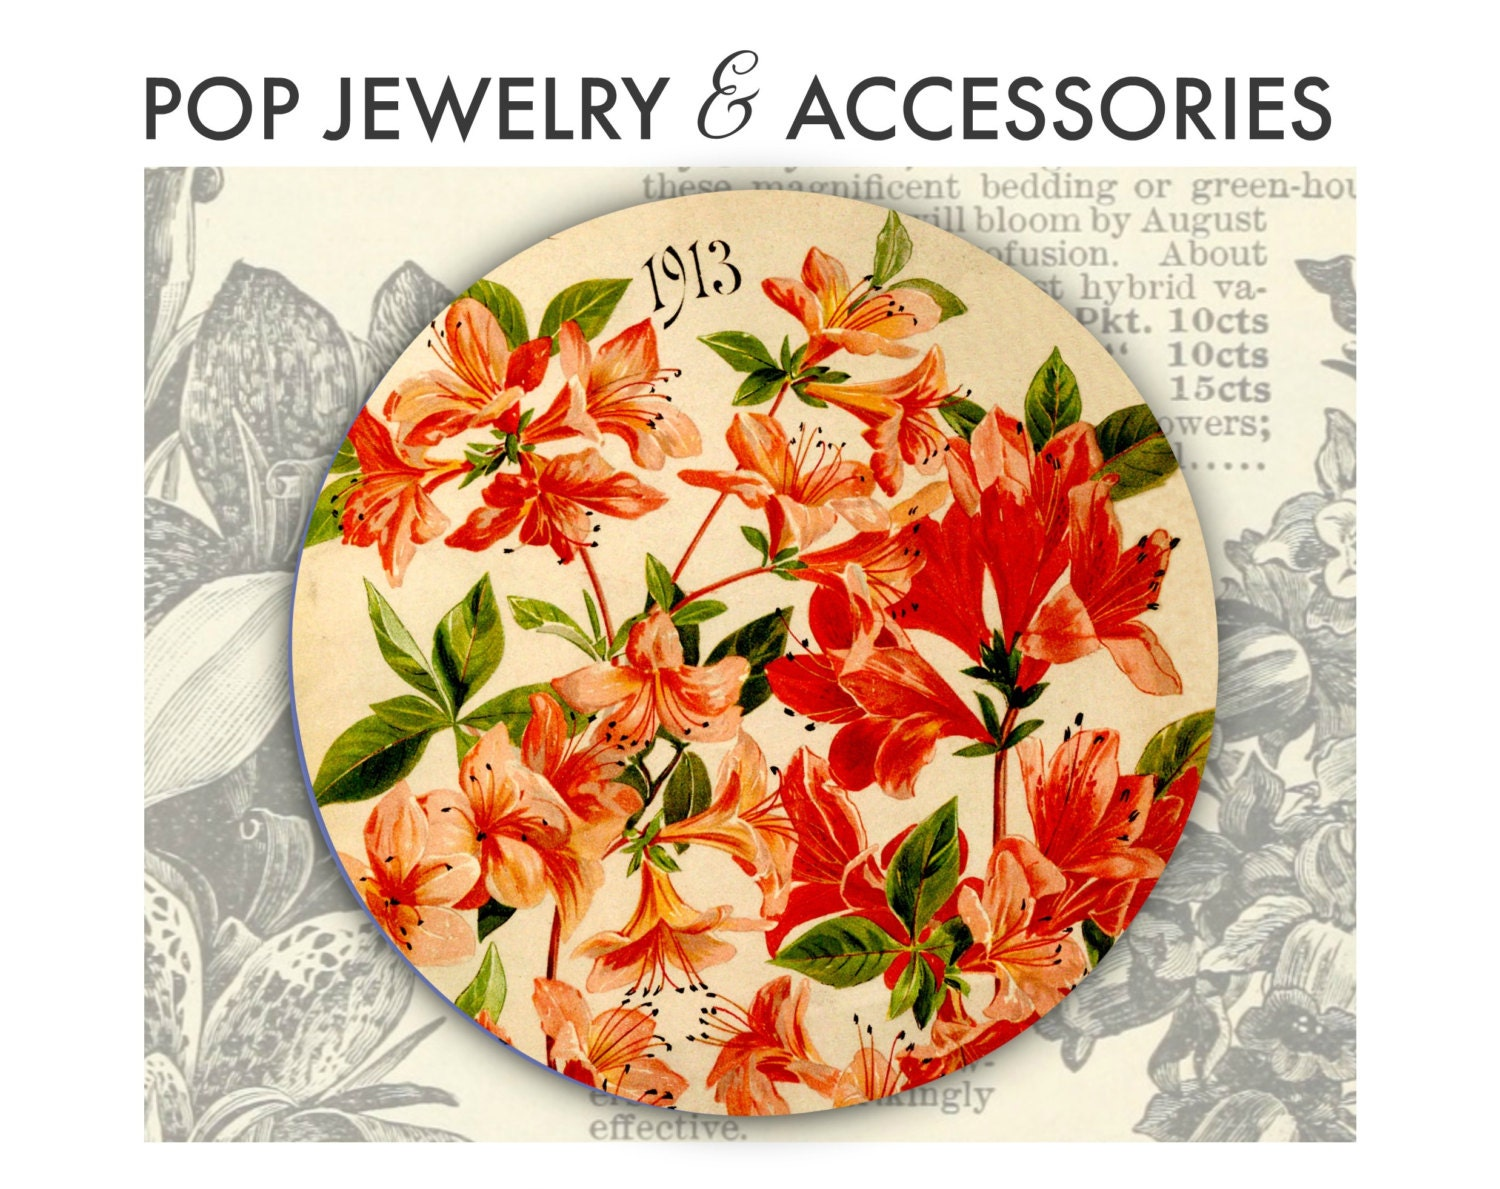 Vintage lily button from 1913 seed catalog fun pop jewelry for any gallery photo gallery photo gallery photo izmirmasajfo